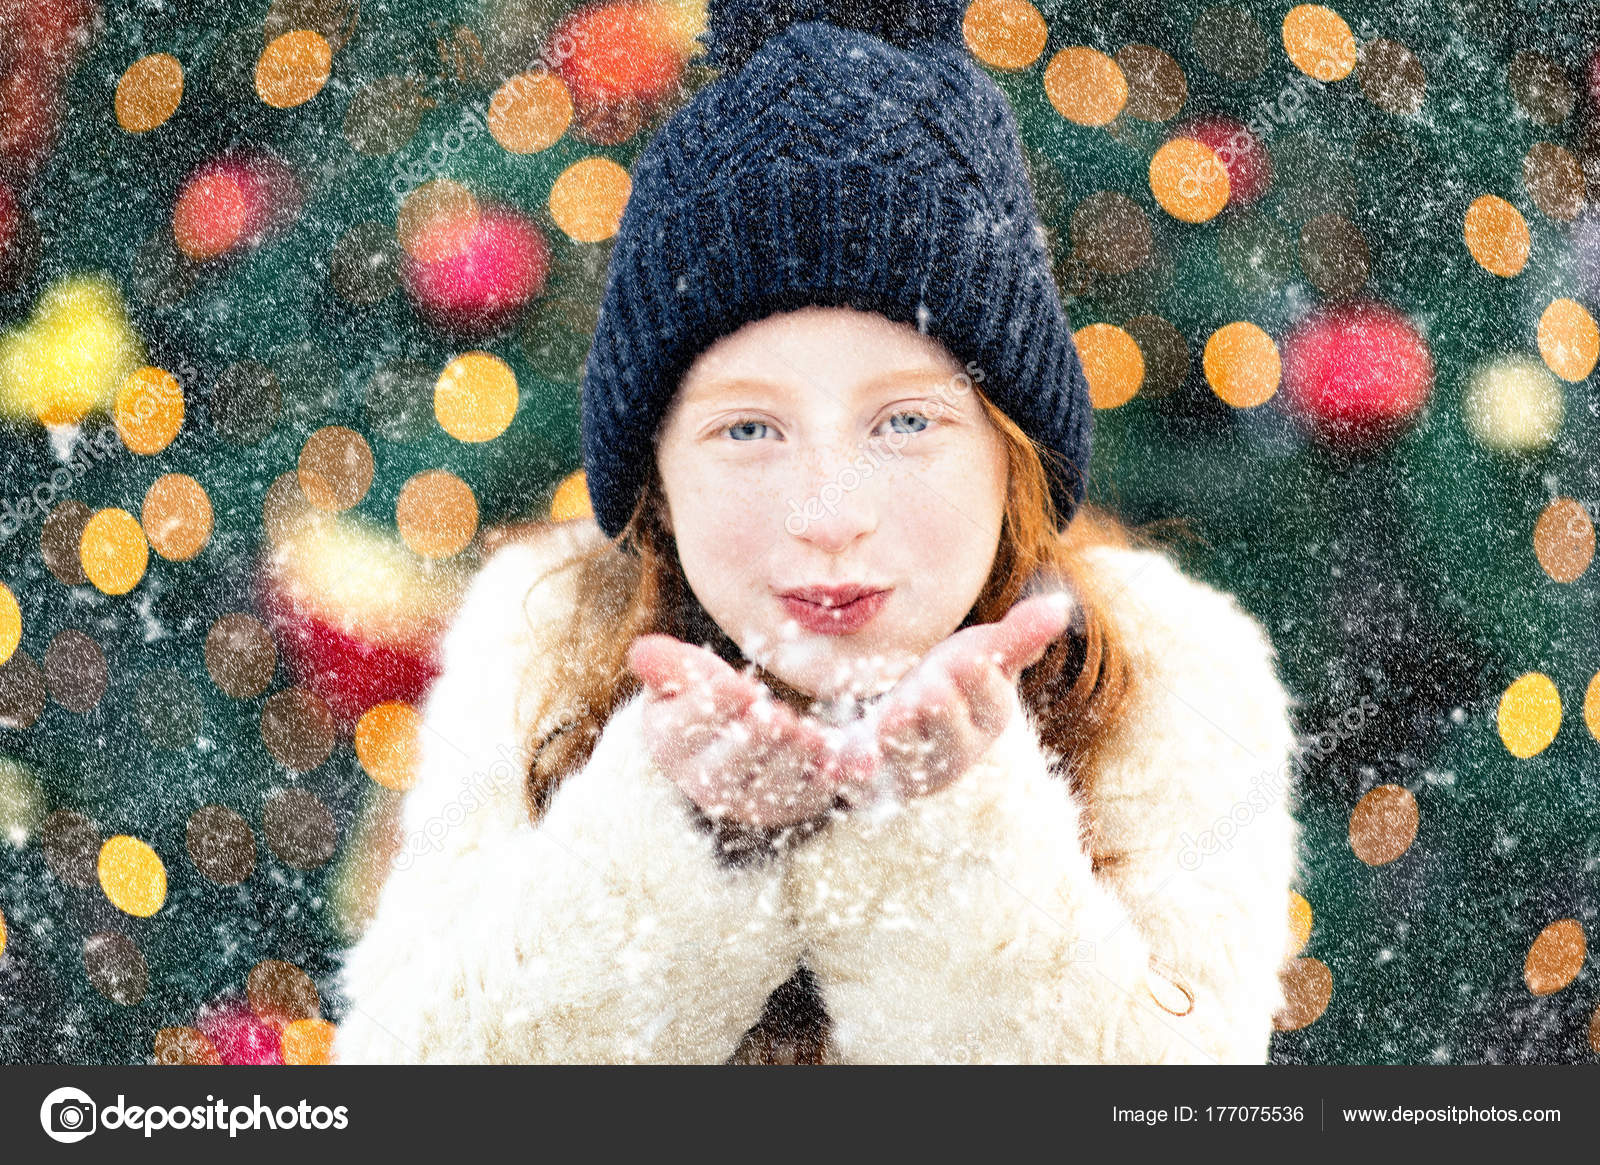 bb1e5c6376e9 Happy Child Blowing Snow Portrait Red Haired Little Girl Wearing ...